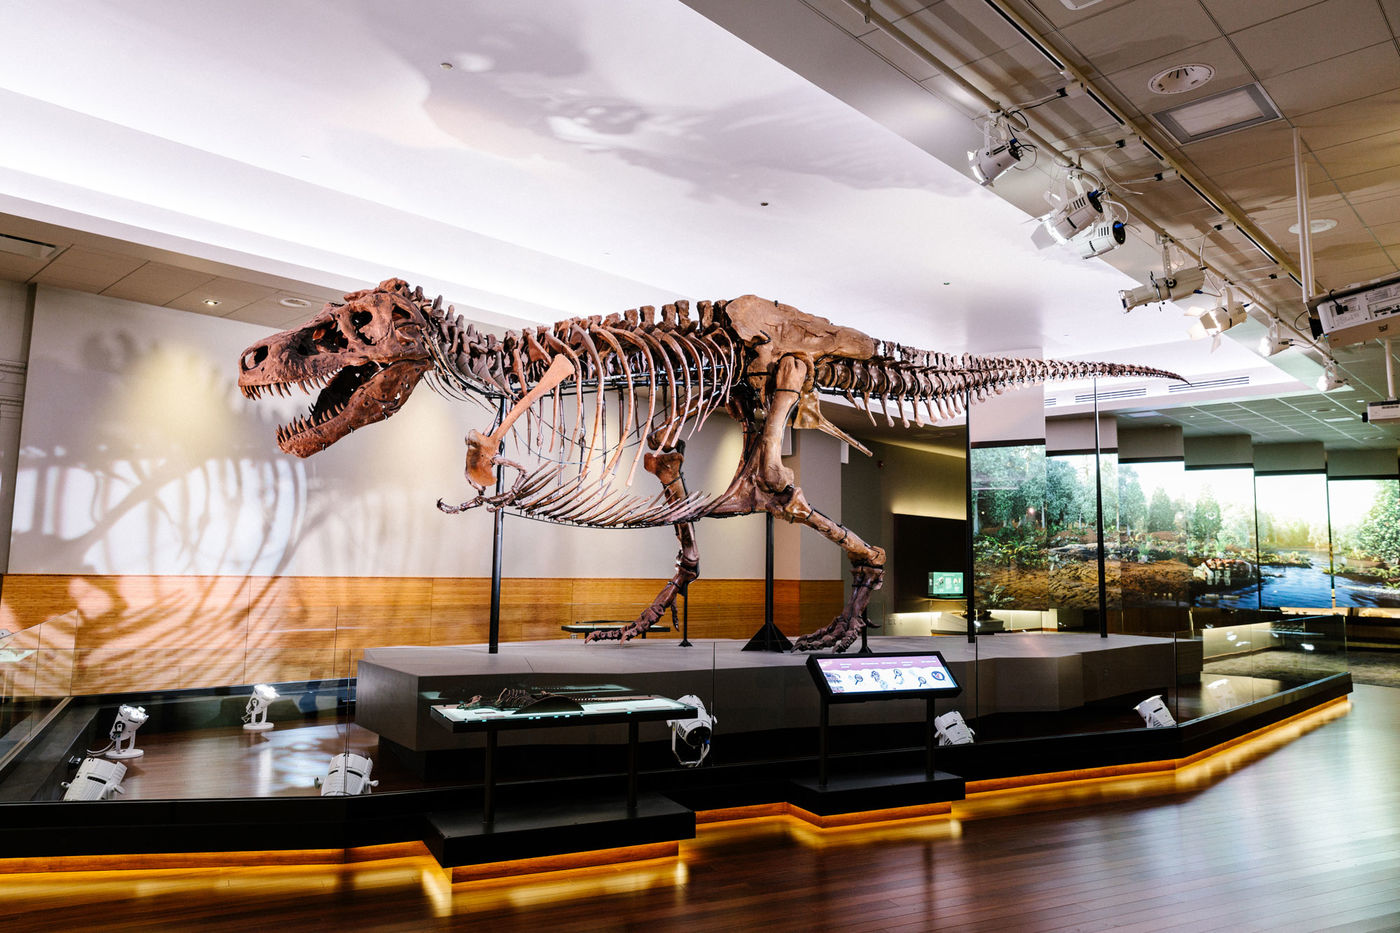 SUE the T. rex dinosaur skeleton on display in a museum gallery. Screens behind the dinosaur show a forest scene.